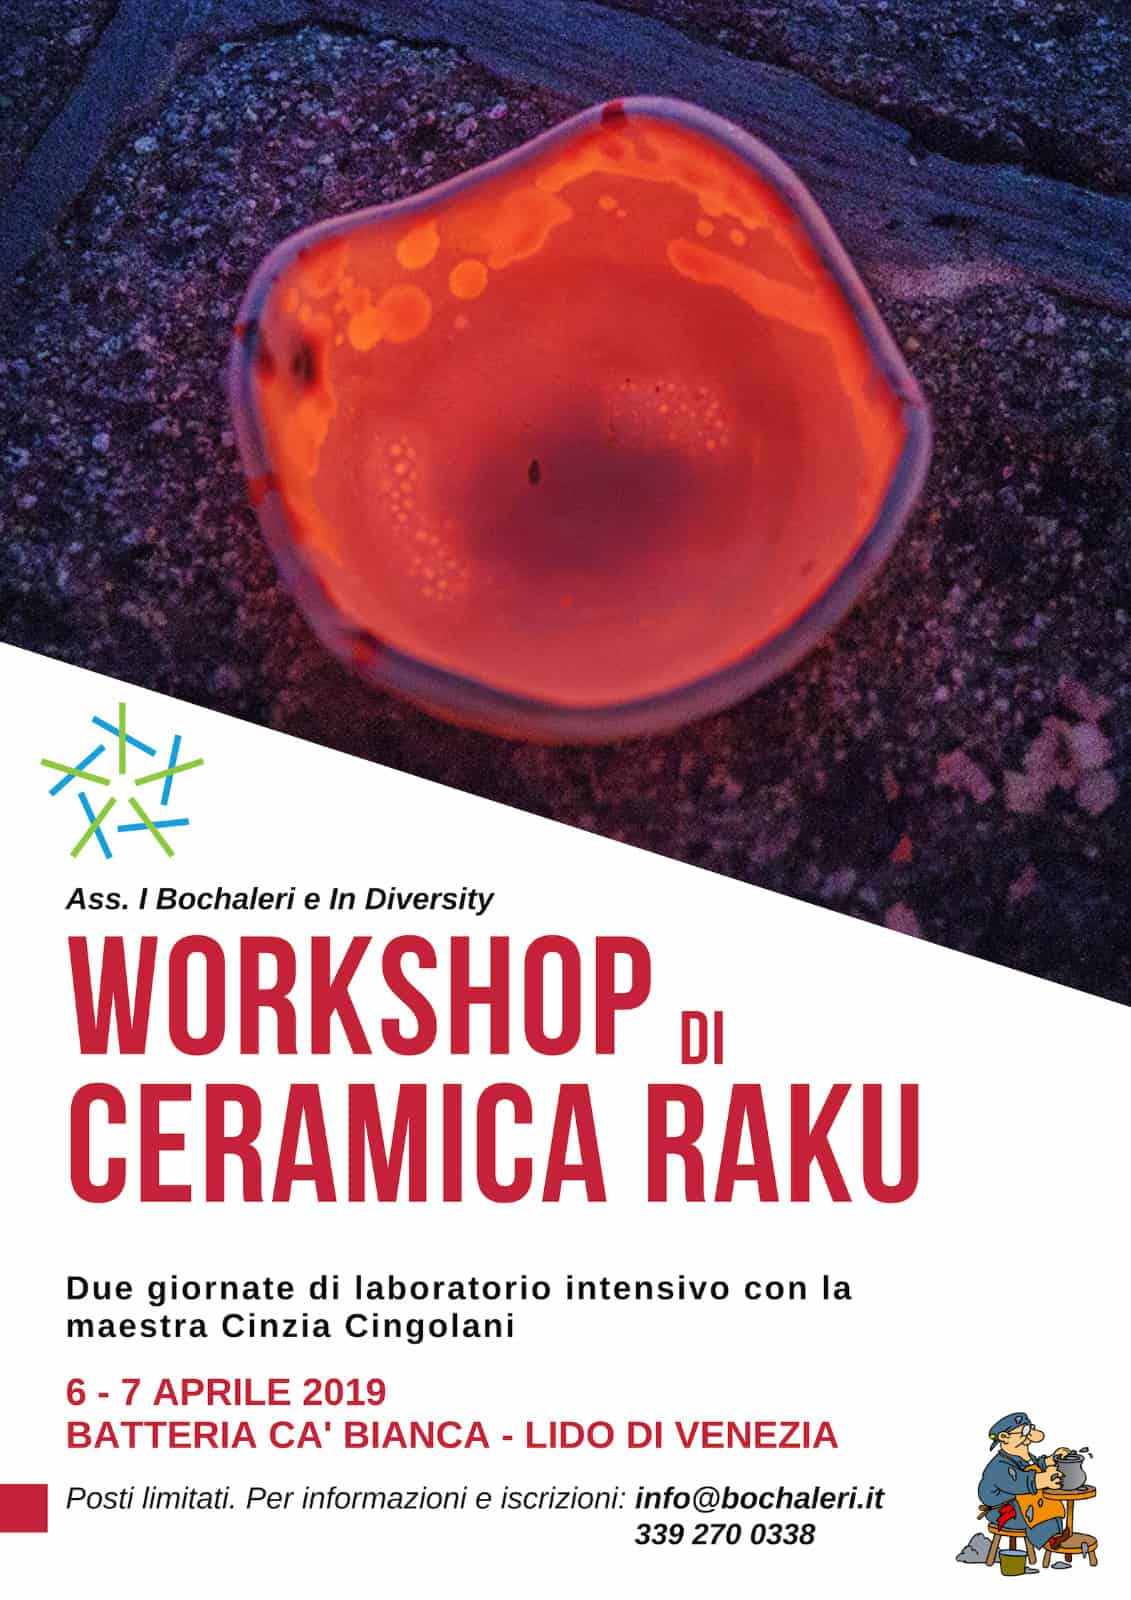 Workshop on Raku Ceramics